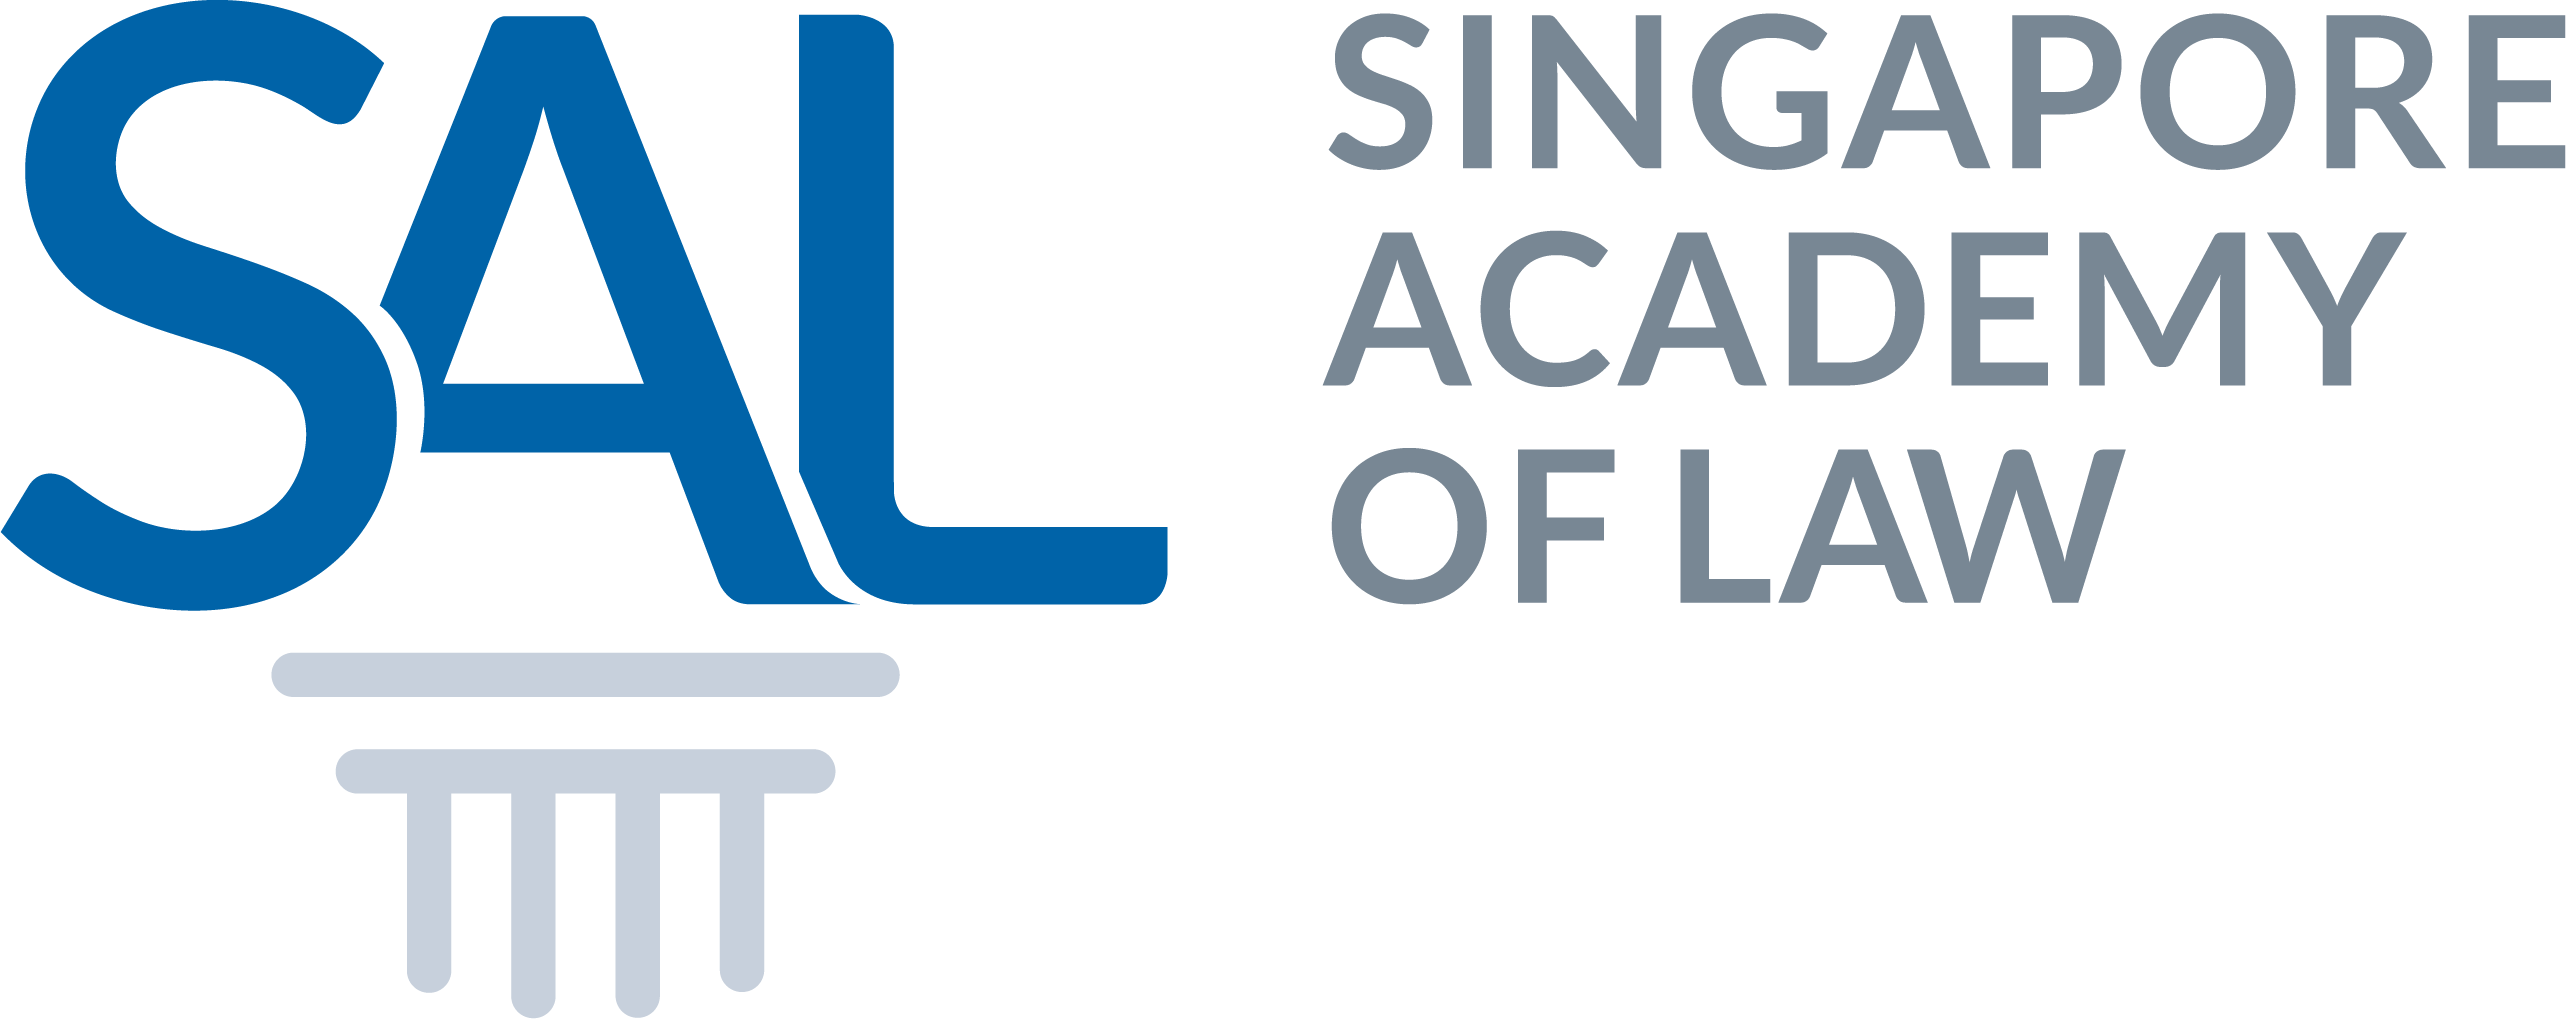 Singapore Academy Of Law logo